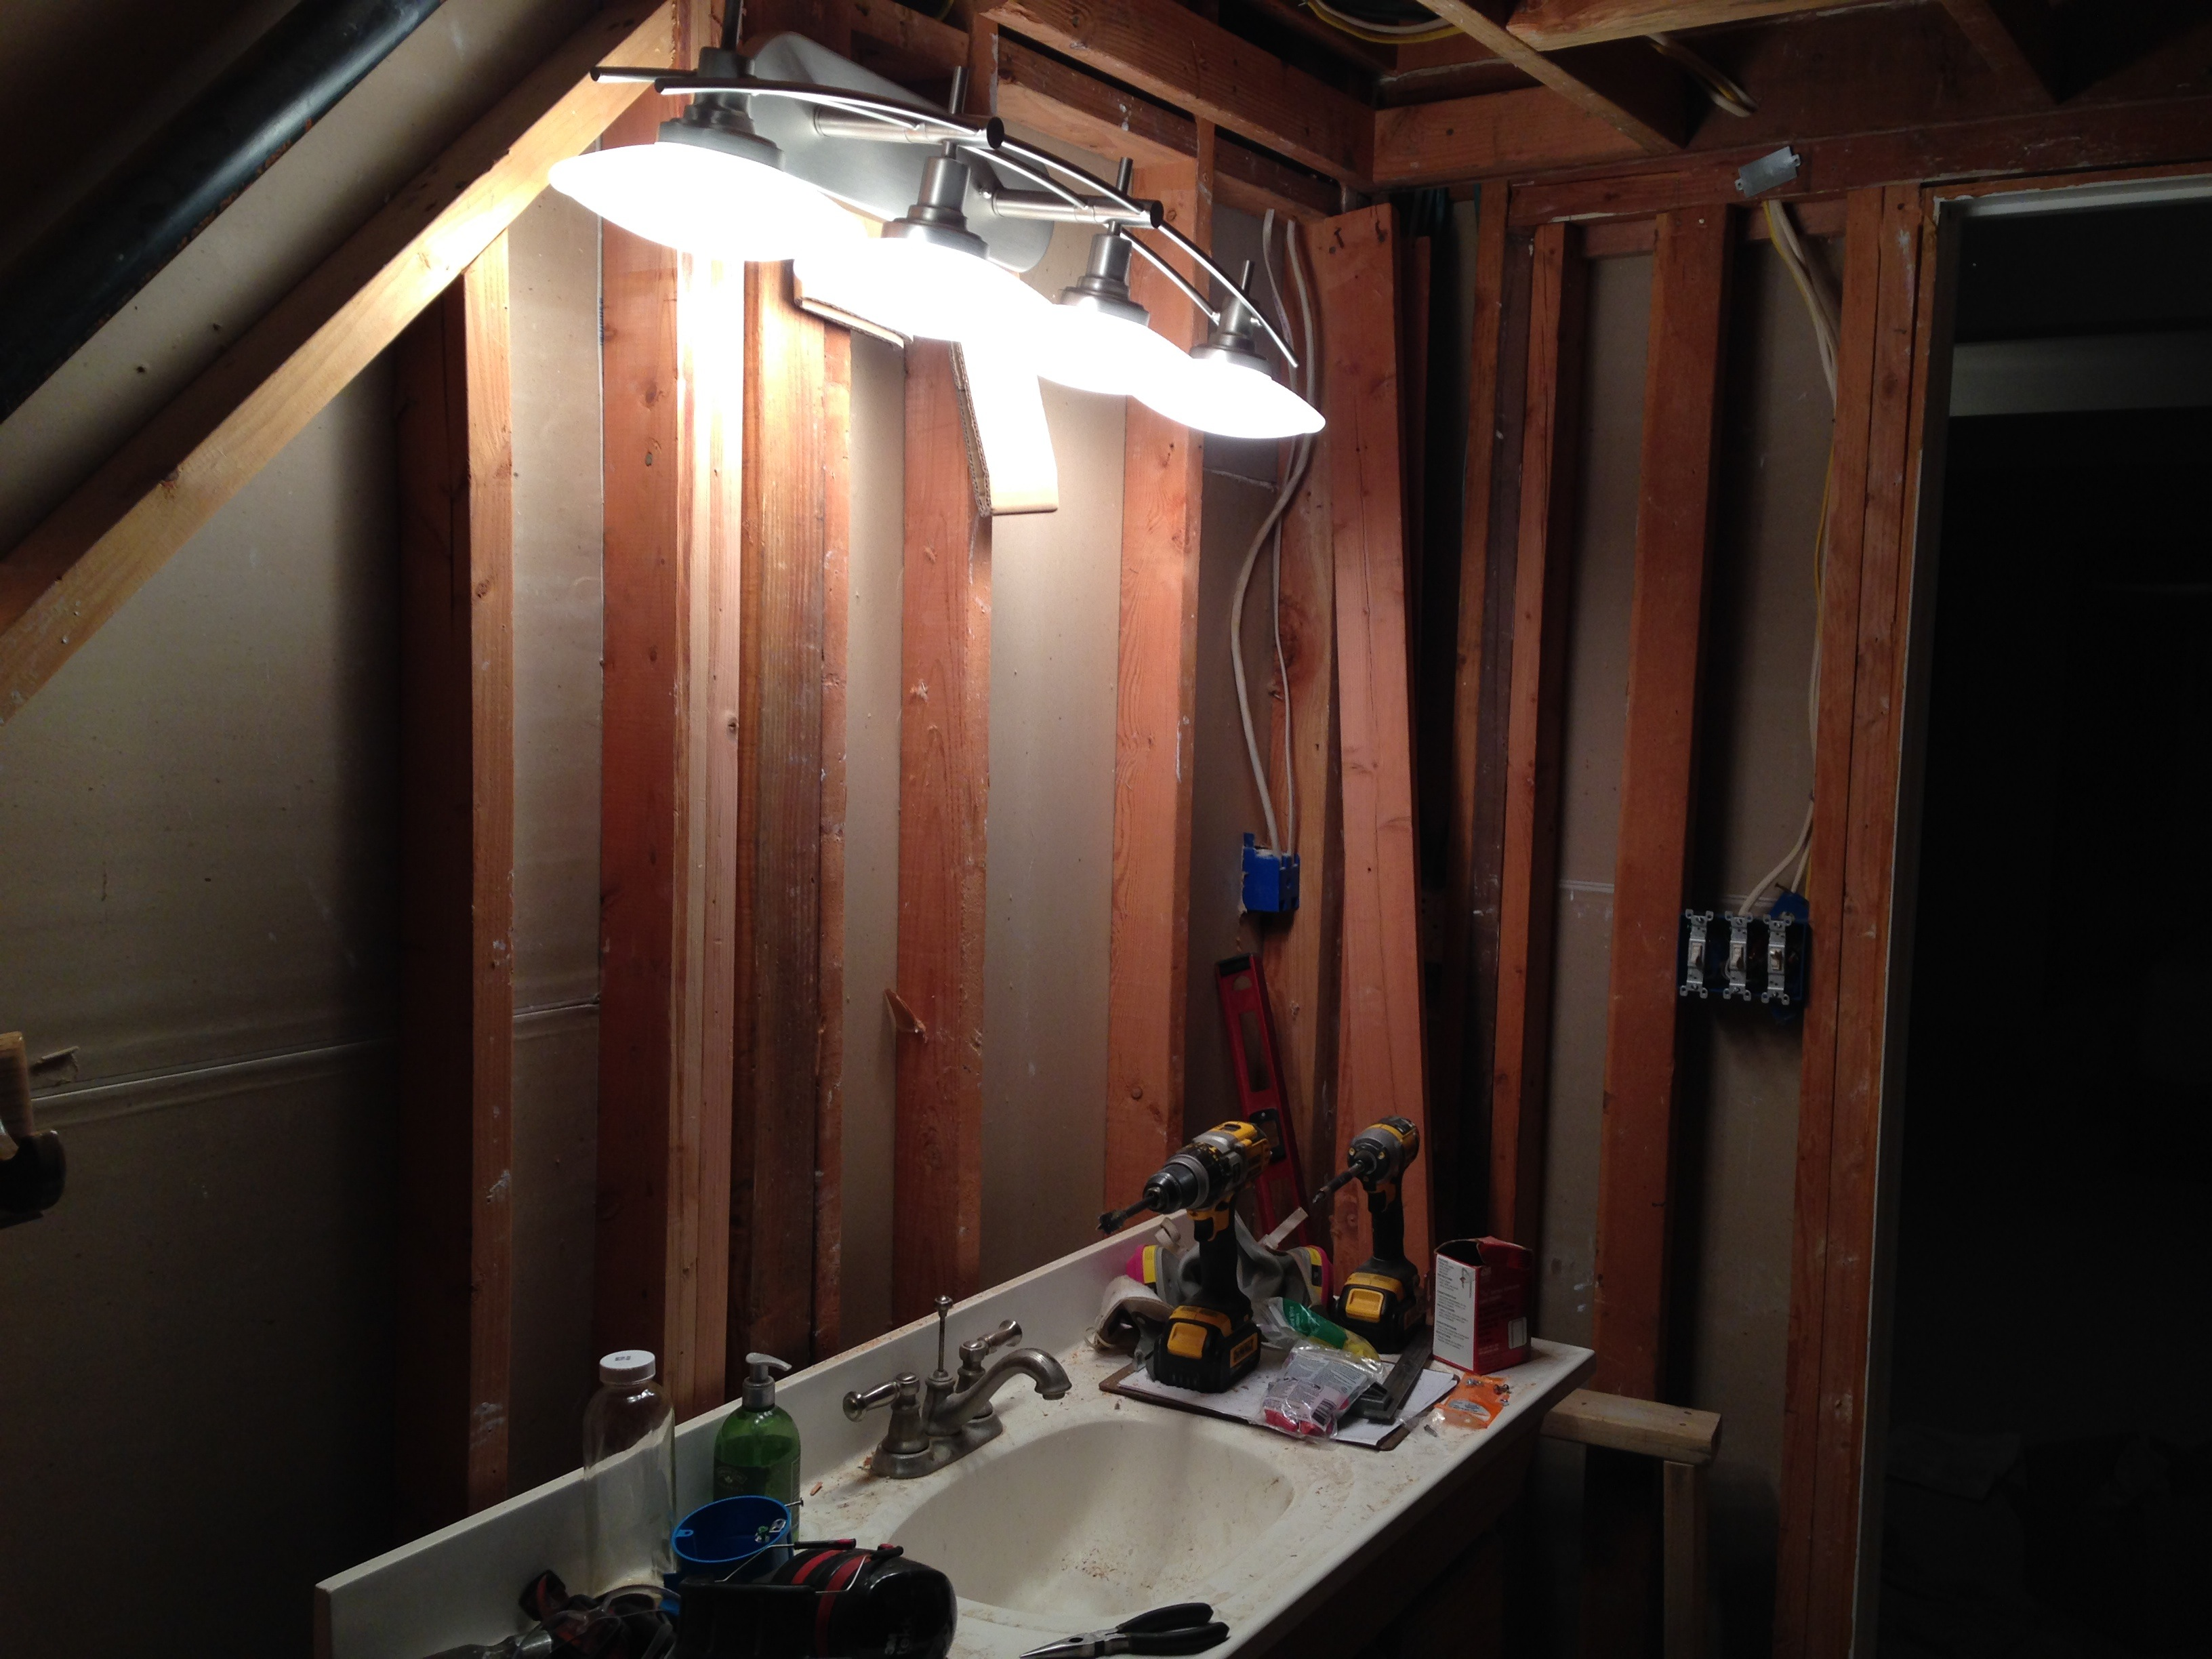 Bathroom Lighting Electrical Code bathroom light with electrical outlet - epienso